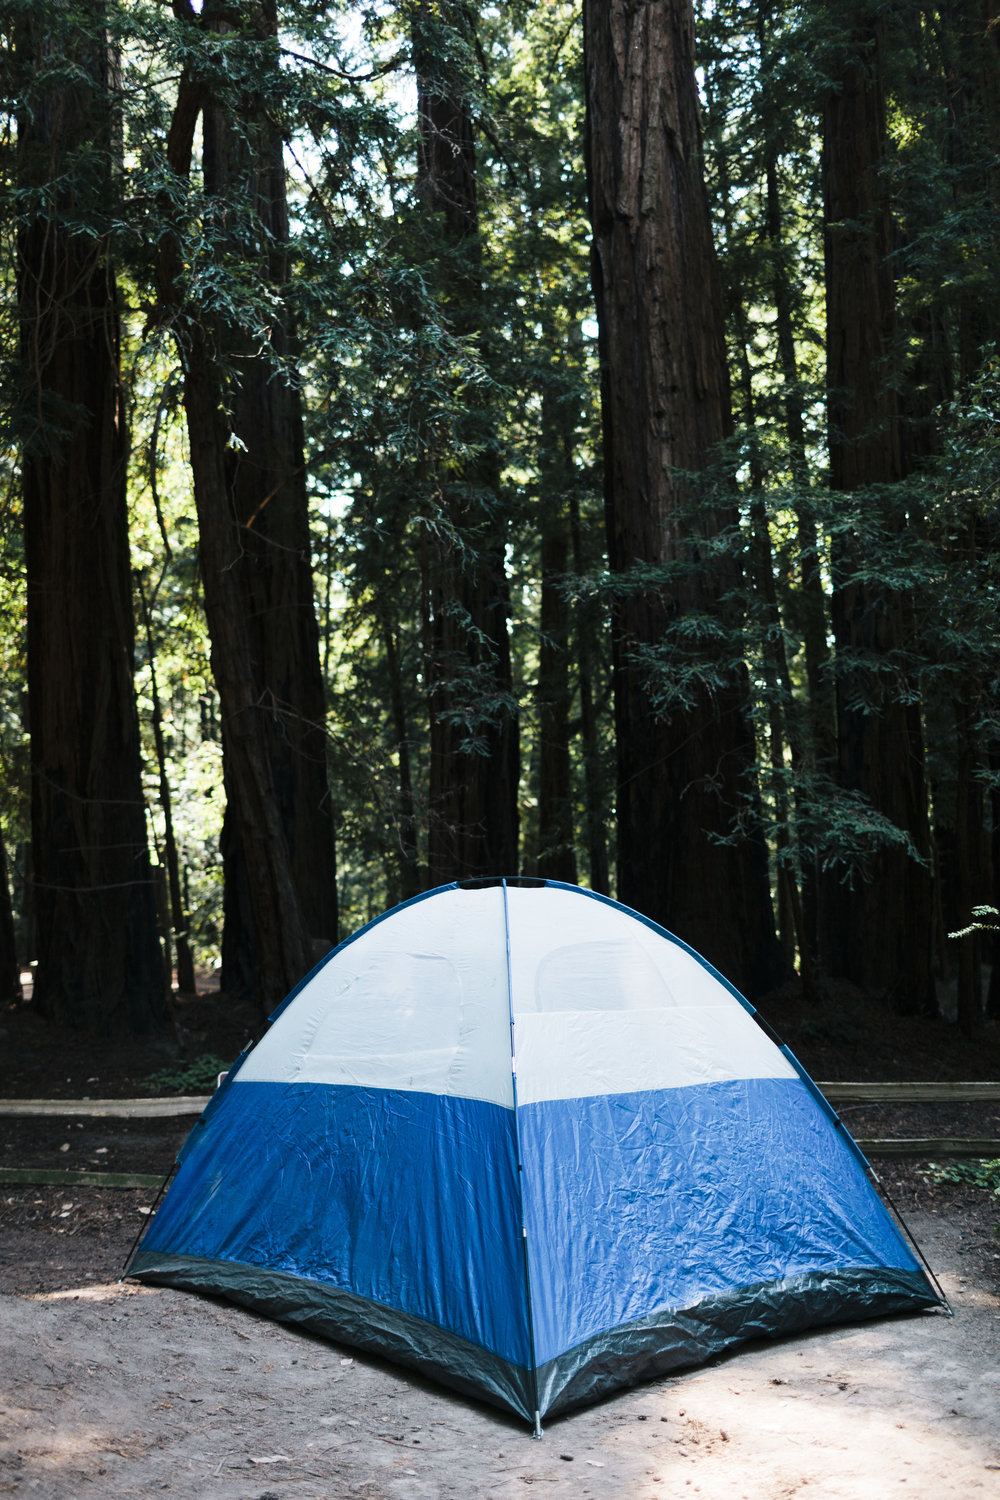 LCrew_Redwoods_0002.jpg